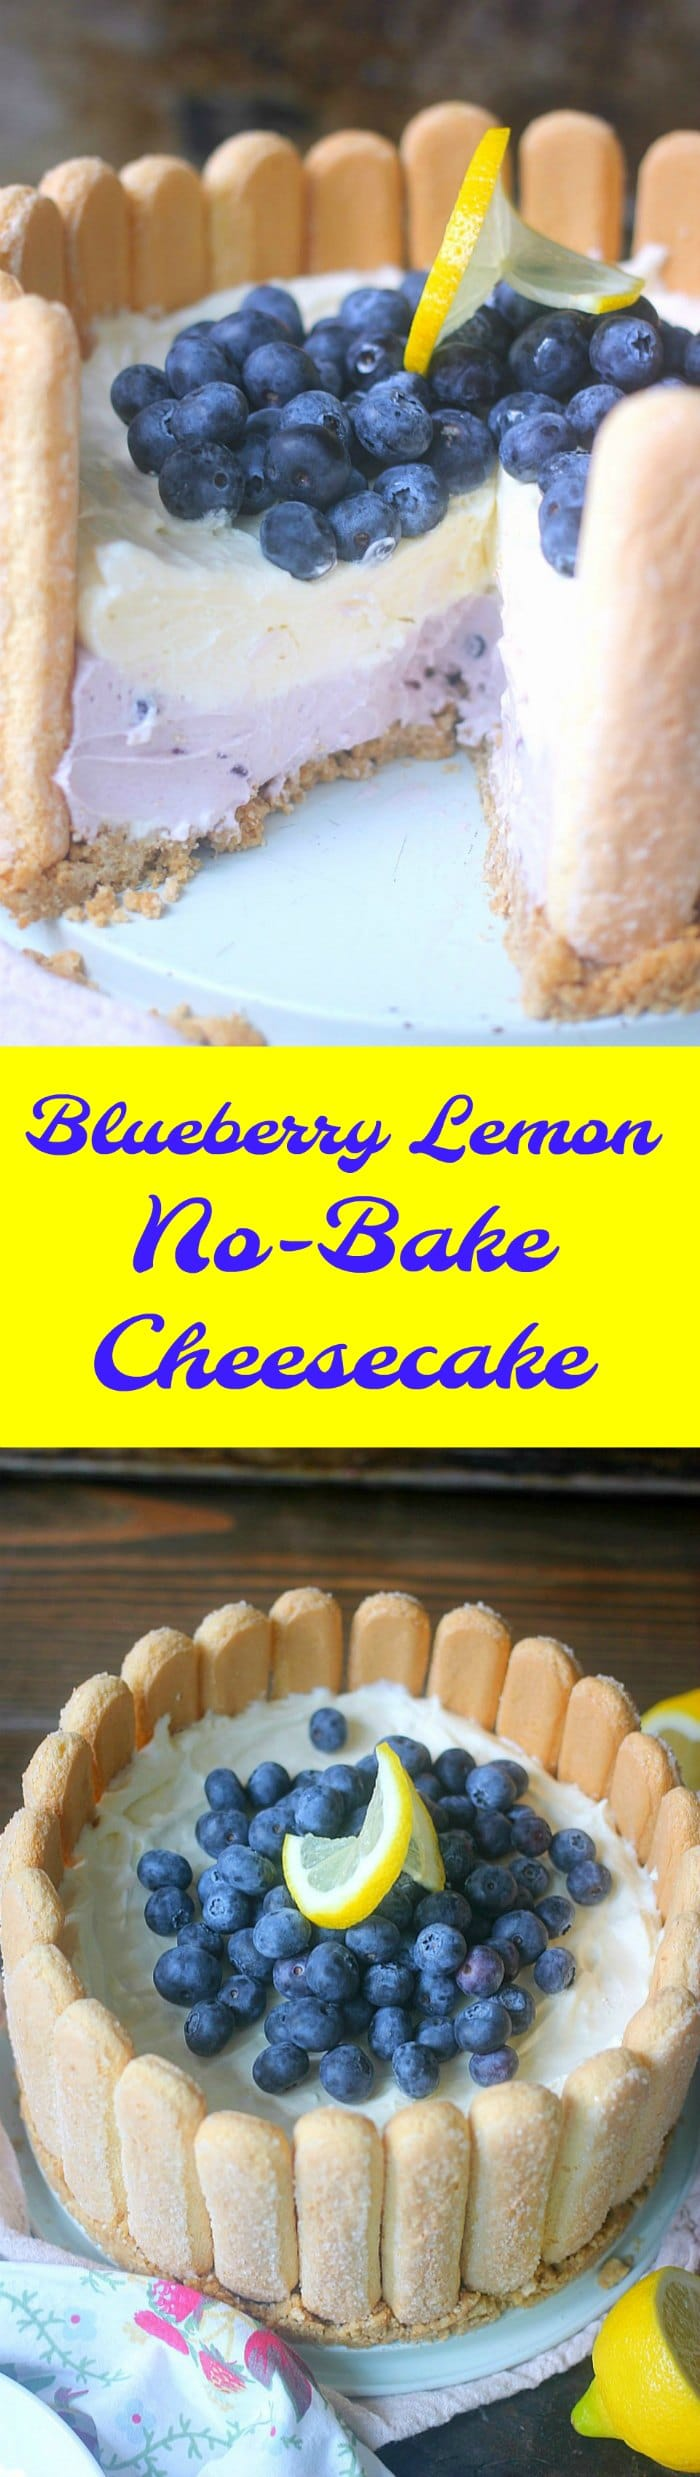 Blueberry Lemon No-Bake Cheesecake